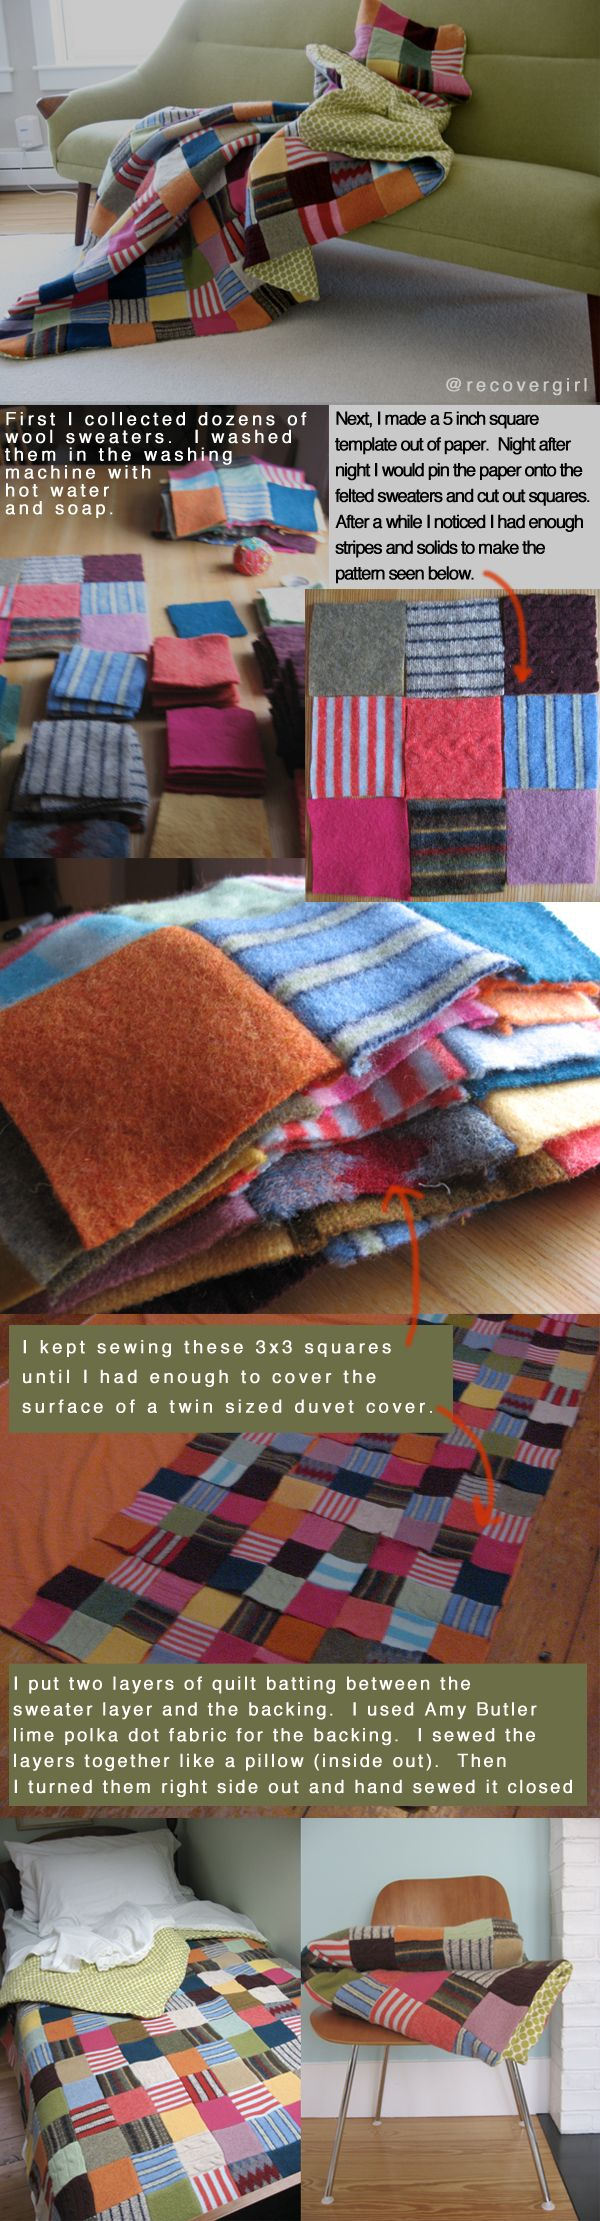 Felted Sweater Blanket